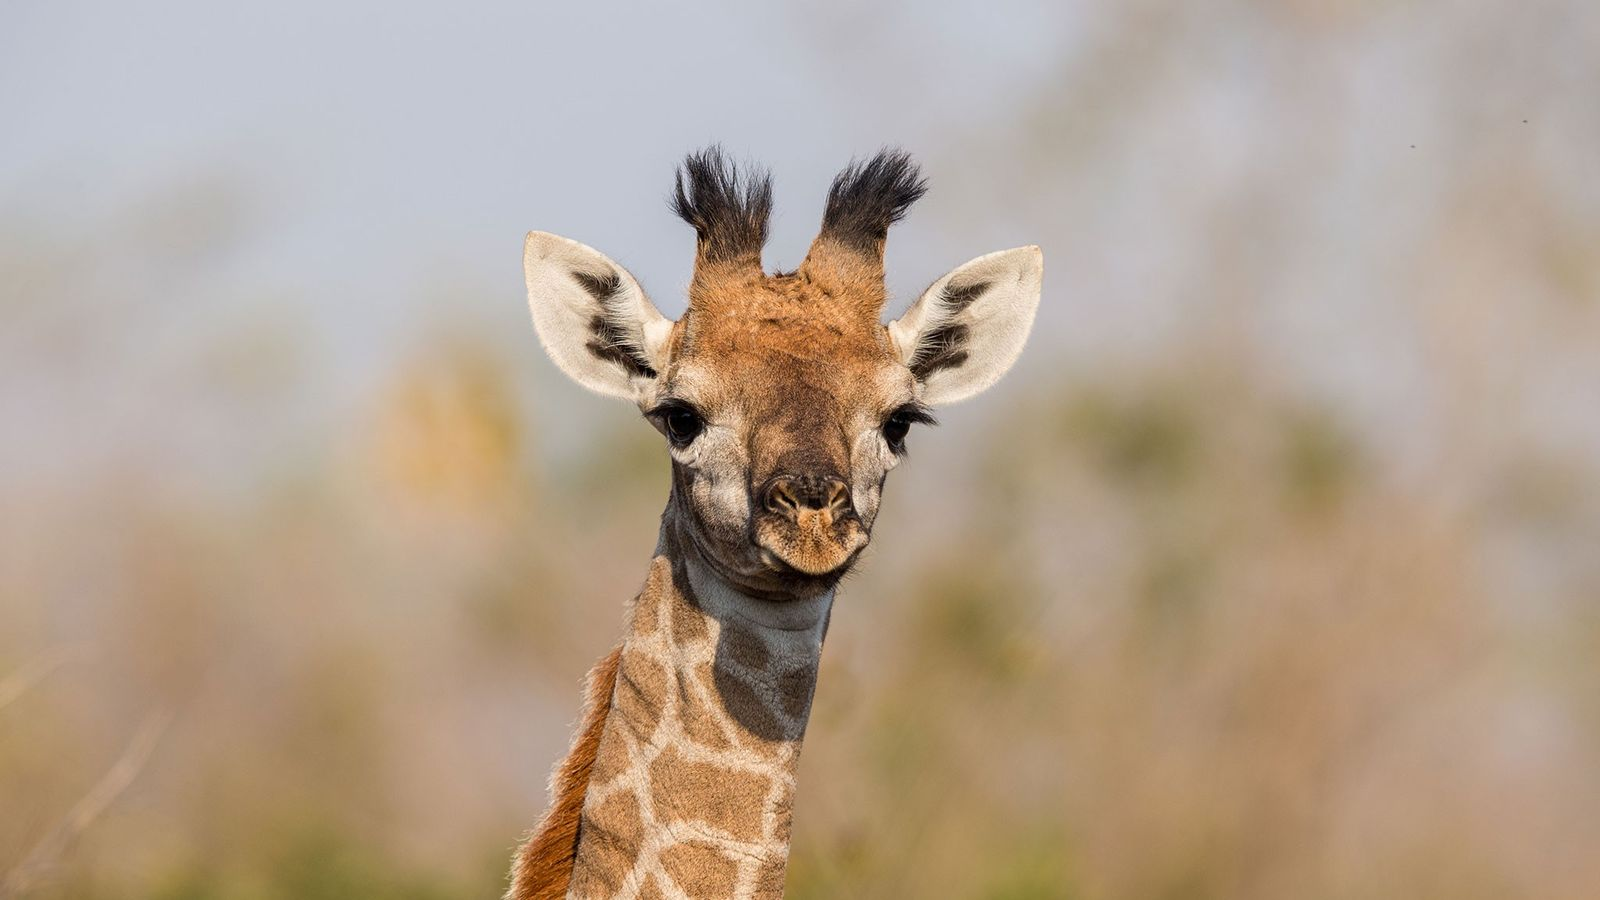 Scientists photographed and studied the spots of wild Masai giraffes – like this one – at ...